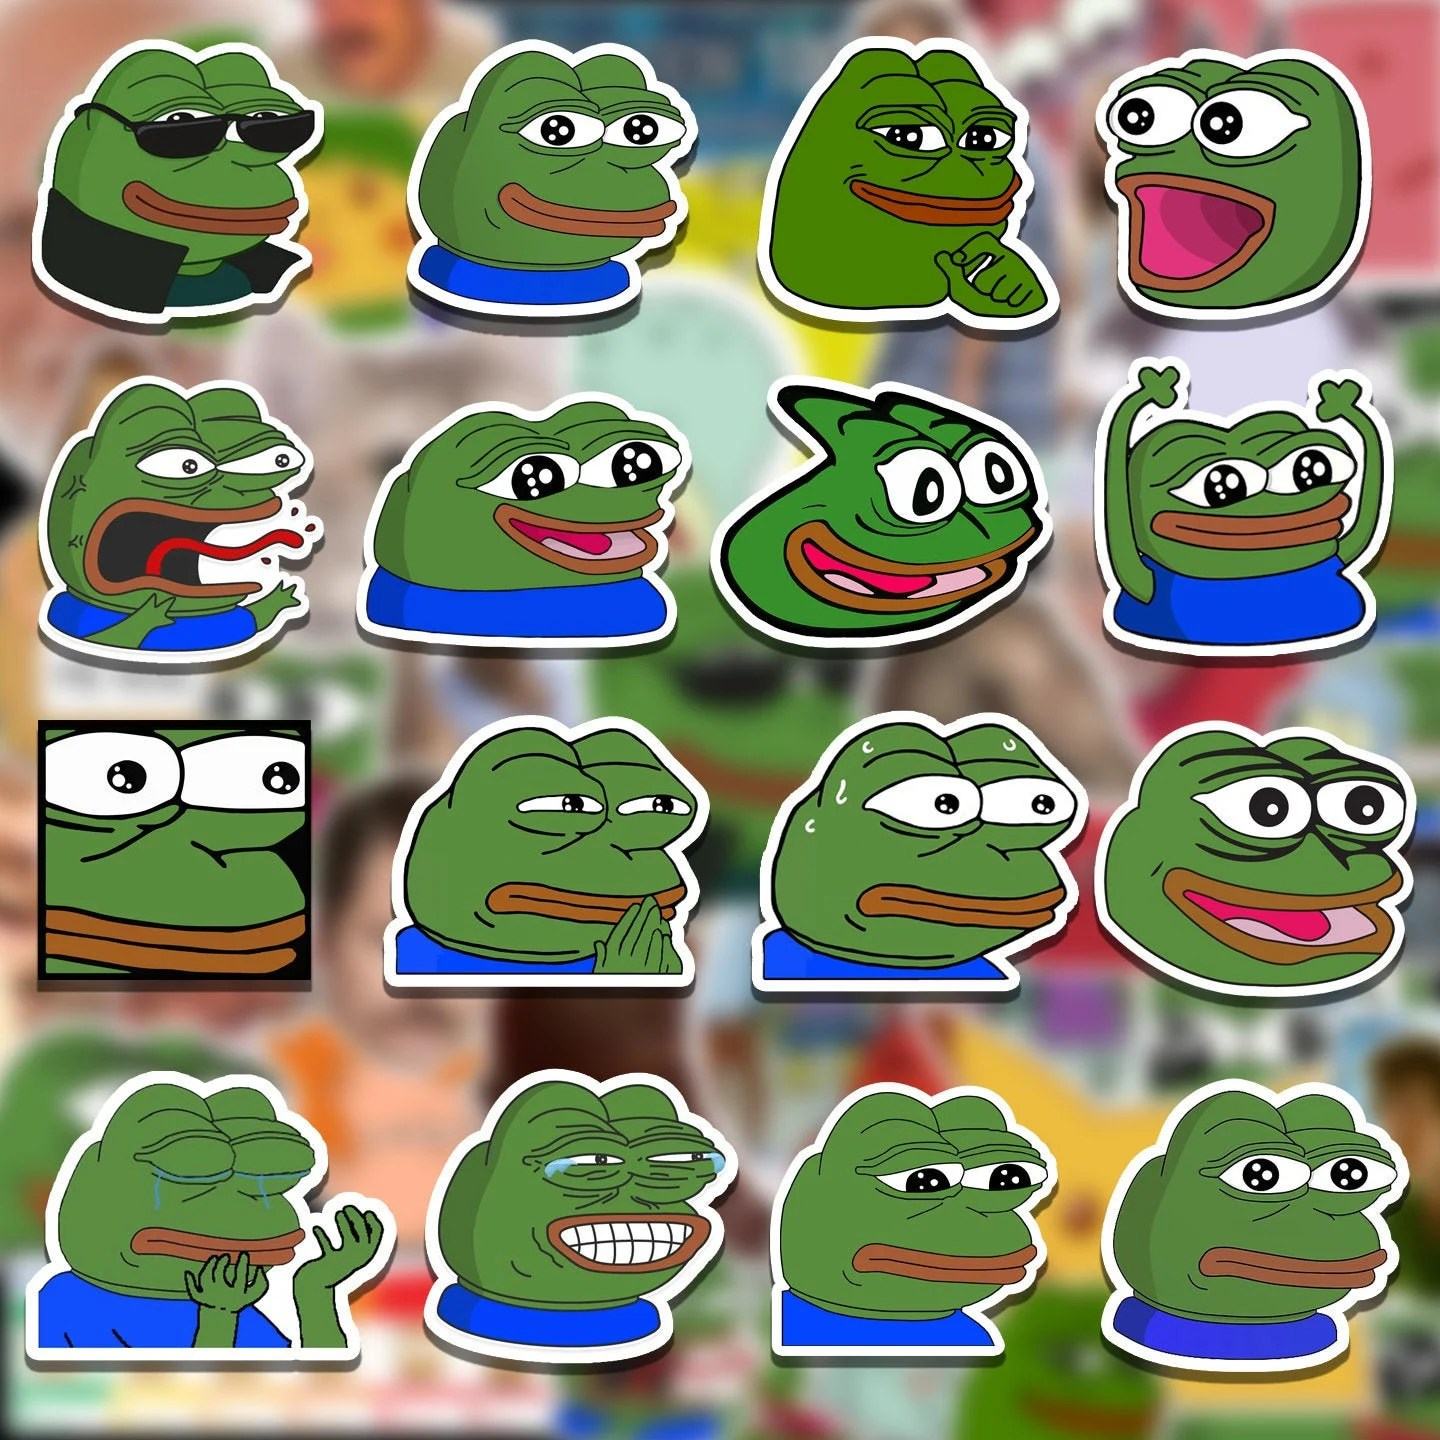 Pepe The Frog Twitch Emote Sticker Bomb Pack Laptop Stickers Etsy